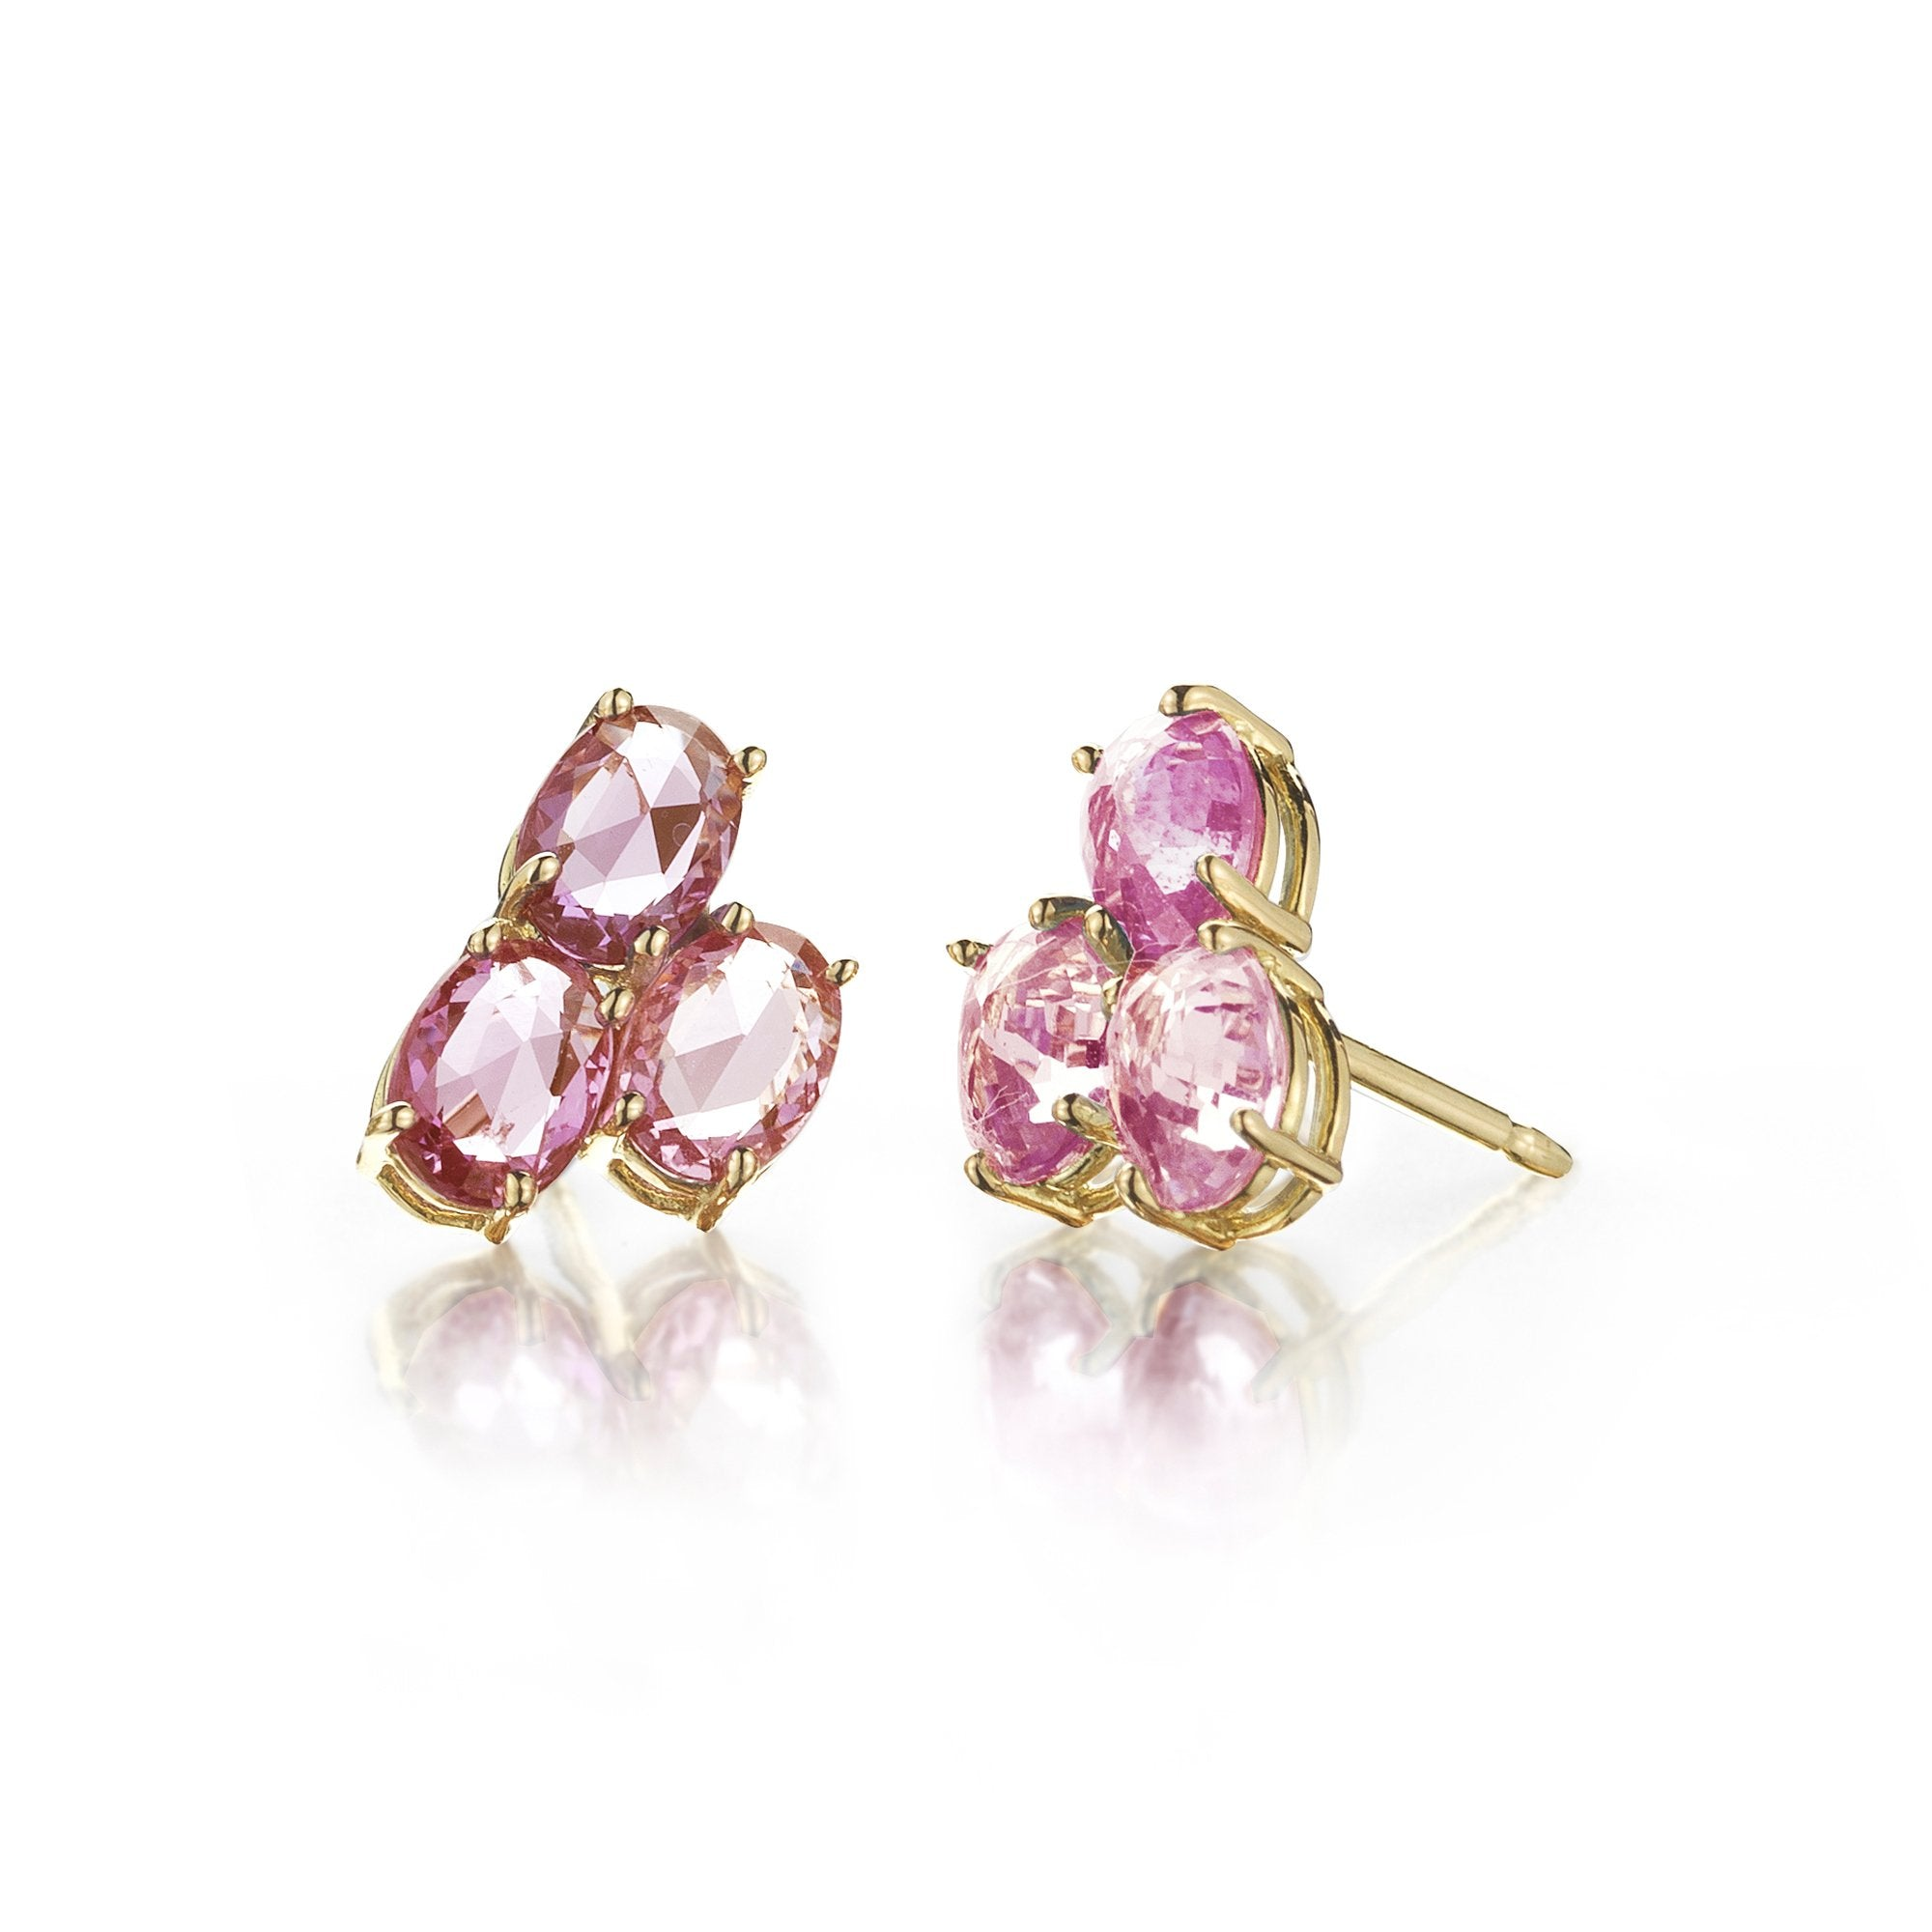 Pink Sapphire 'Ombre' Trillion Stud Earrings - Paolo Costagli - 1